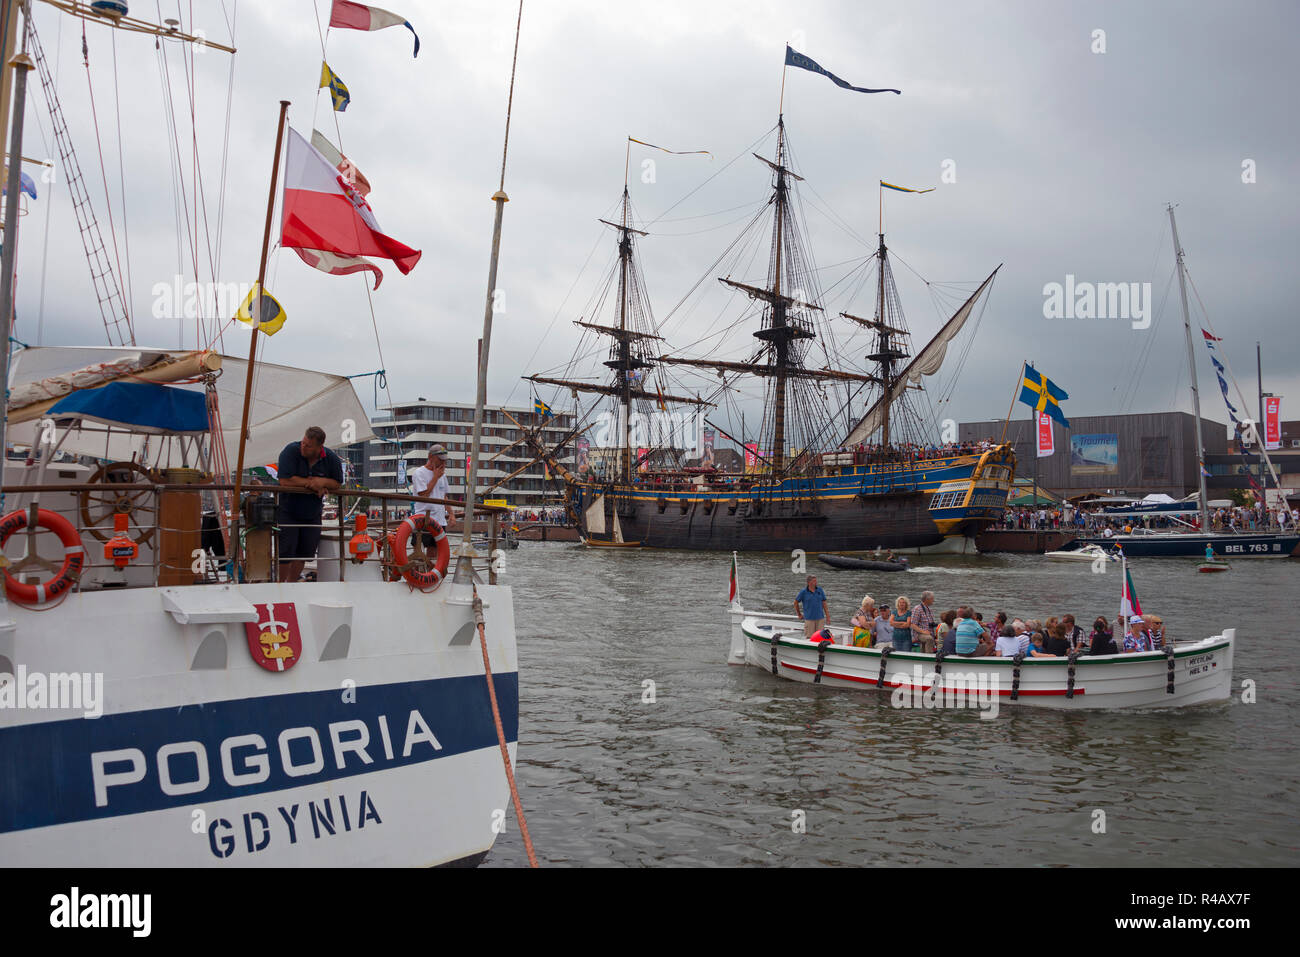 Sailing ships, Bremerhaven, Lower Saxony, Germany - Stock Image